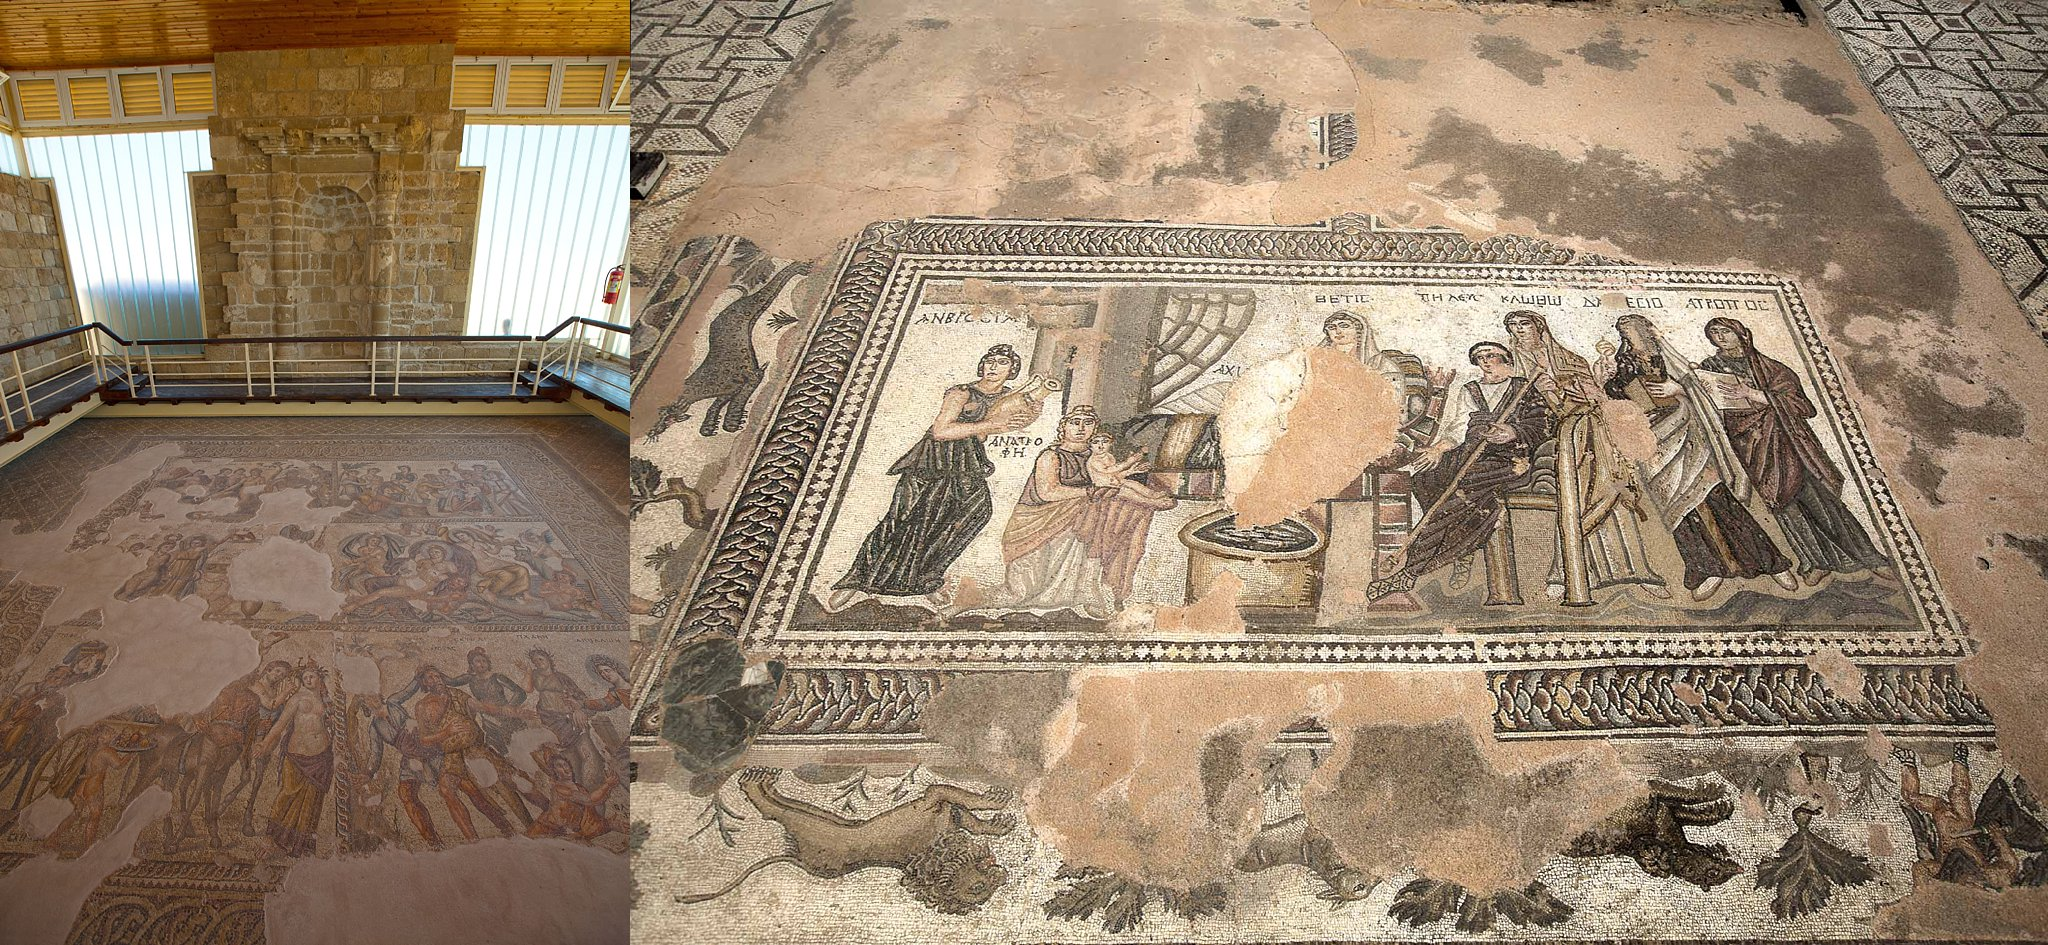 Some of the mosaics at Kato Paphos Archaeological Park in Paphos, Cyprus